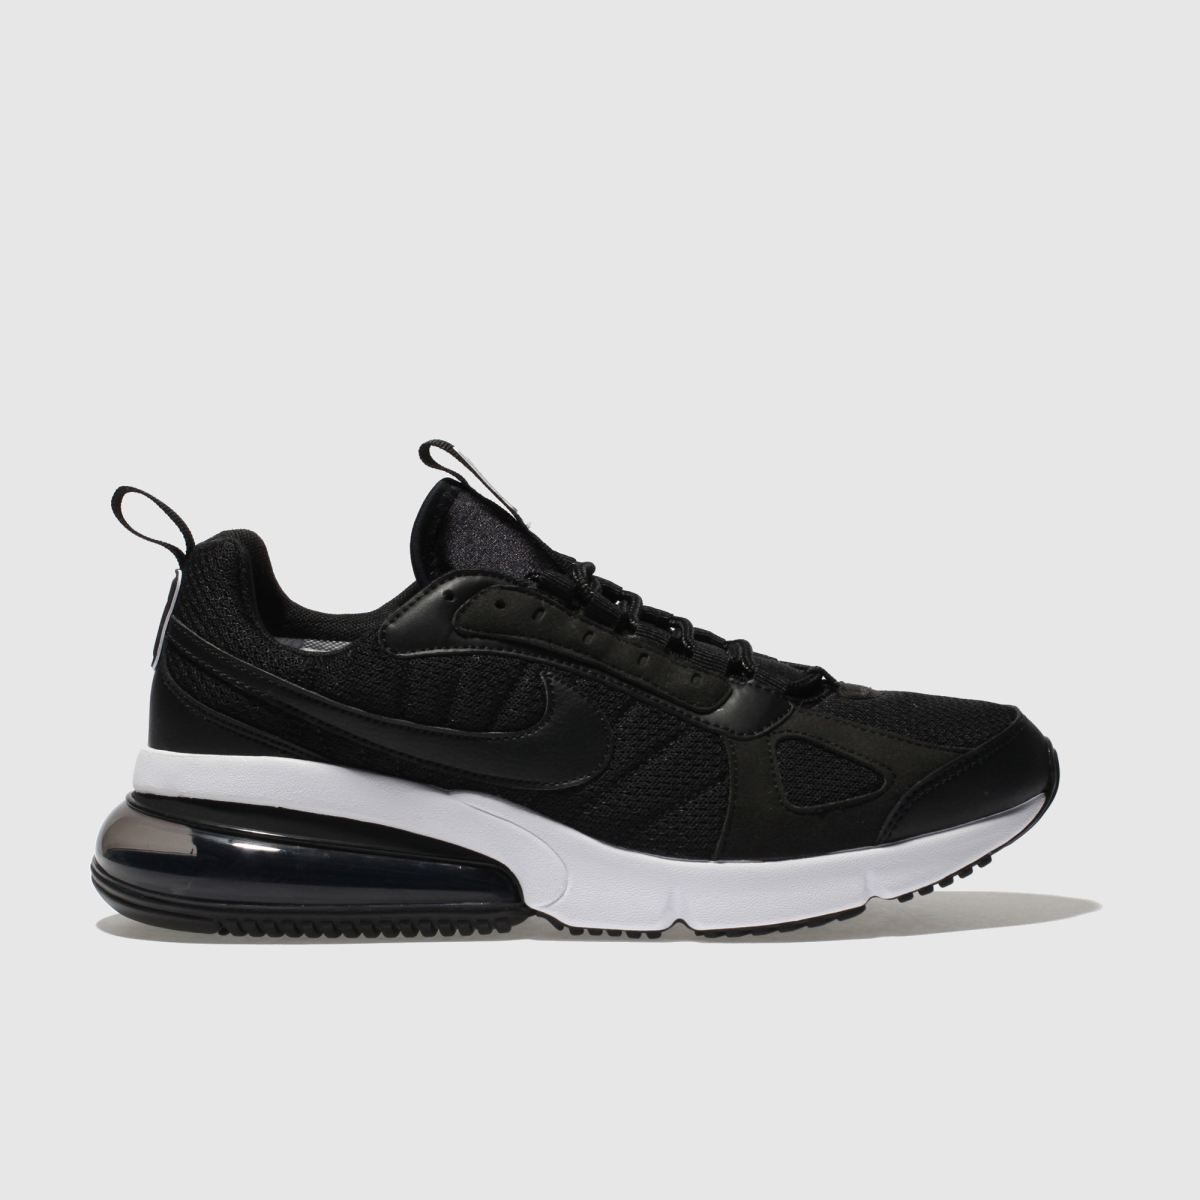 Nike Black & White Air Max 270 Futura Trainers